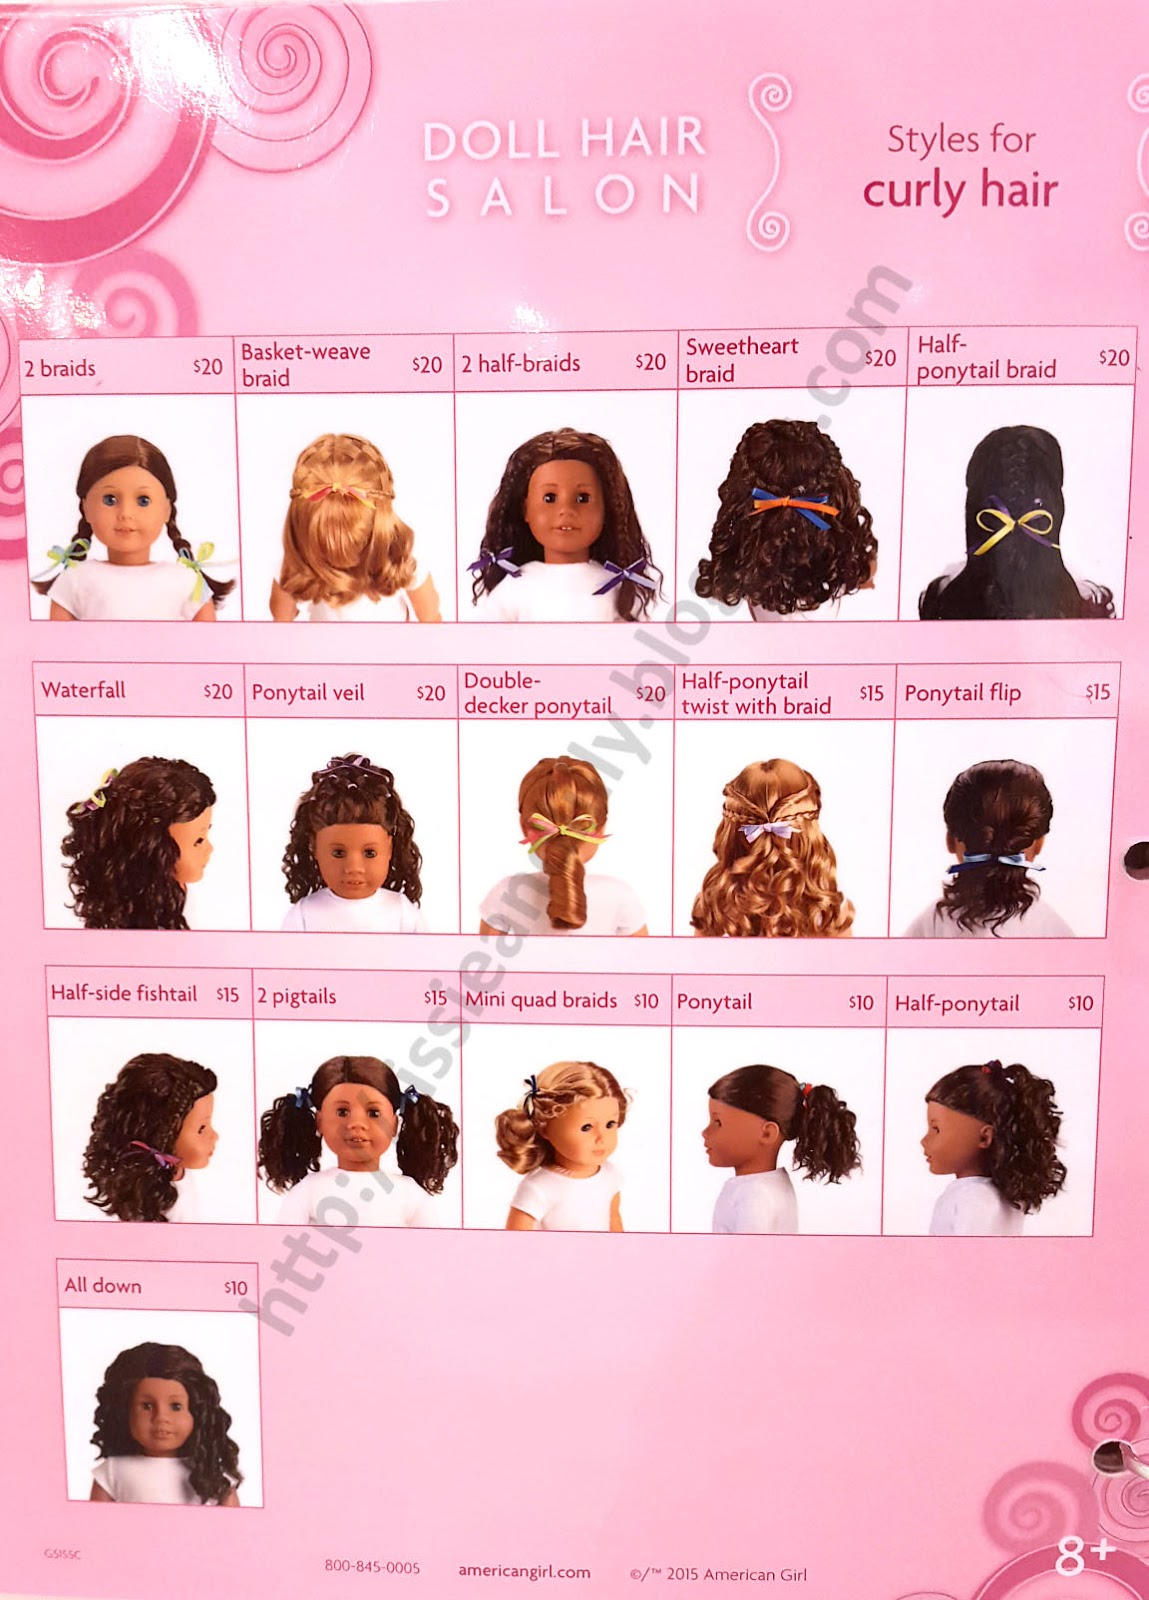 american girl hair salon styles lissie amp lilly ag salon hairstyles 1991 | WM%2B20150521 122210